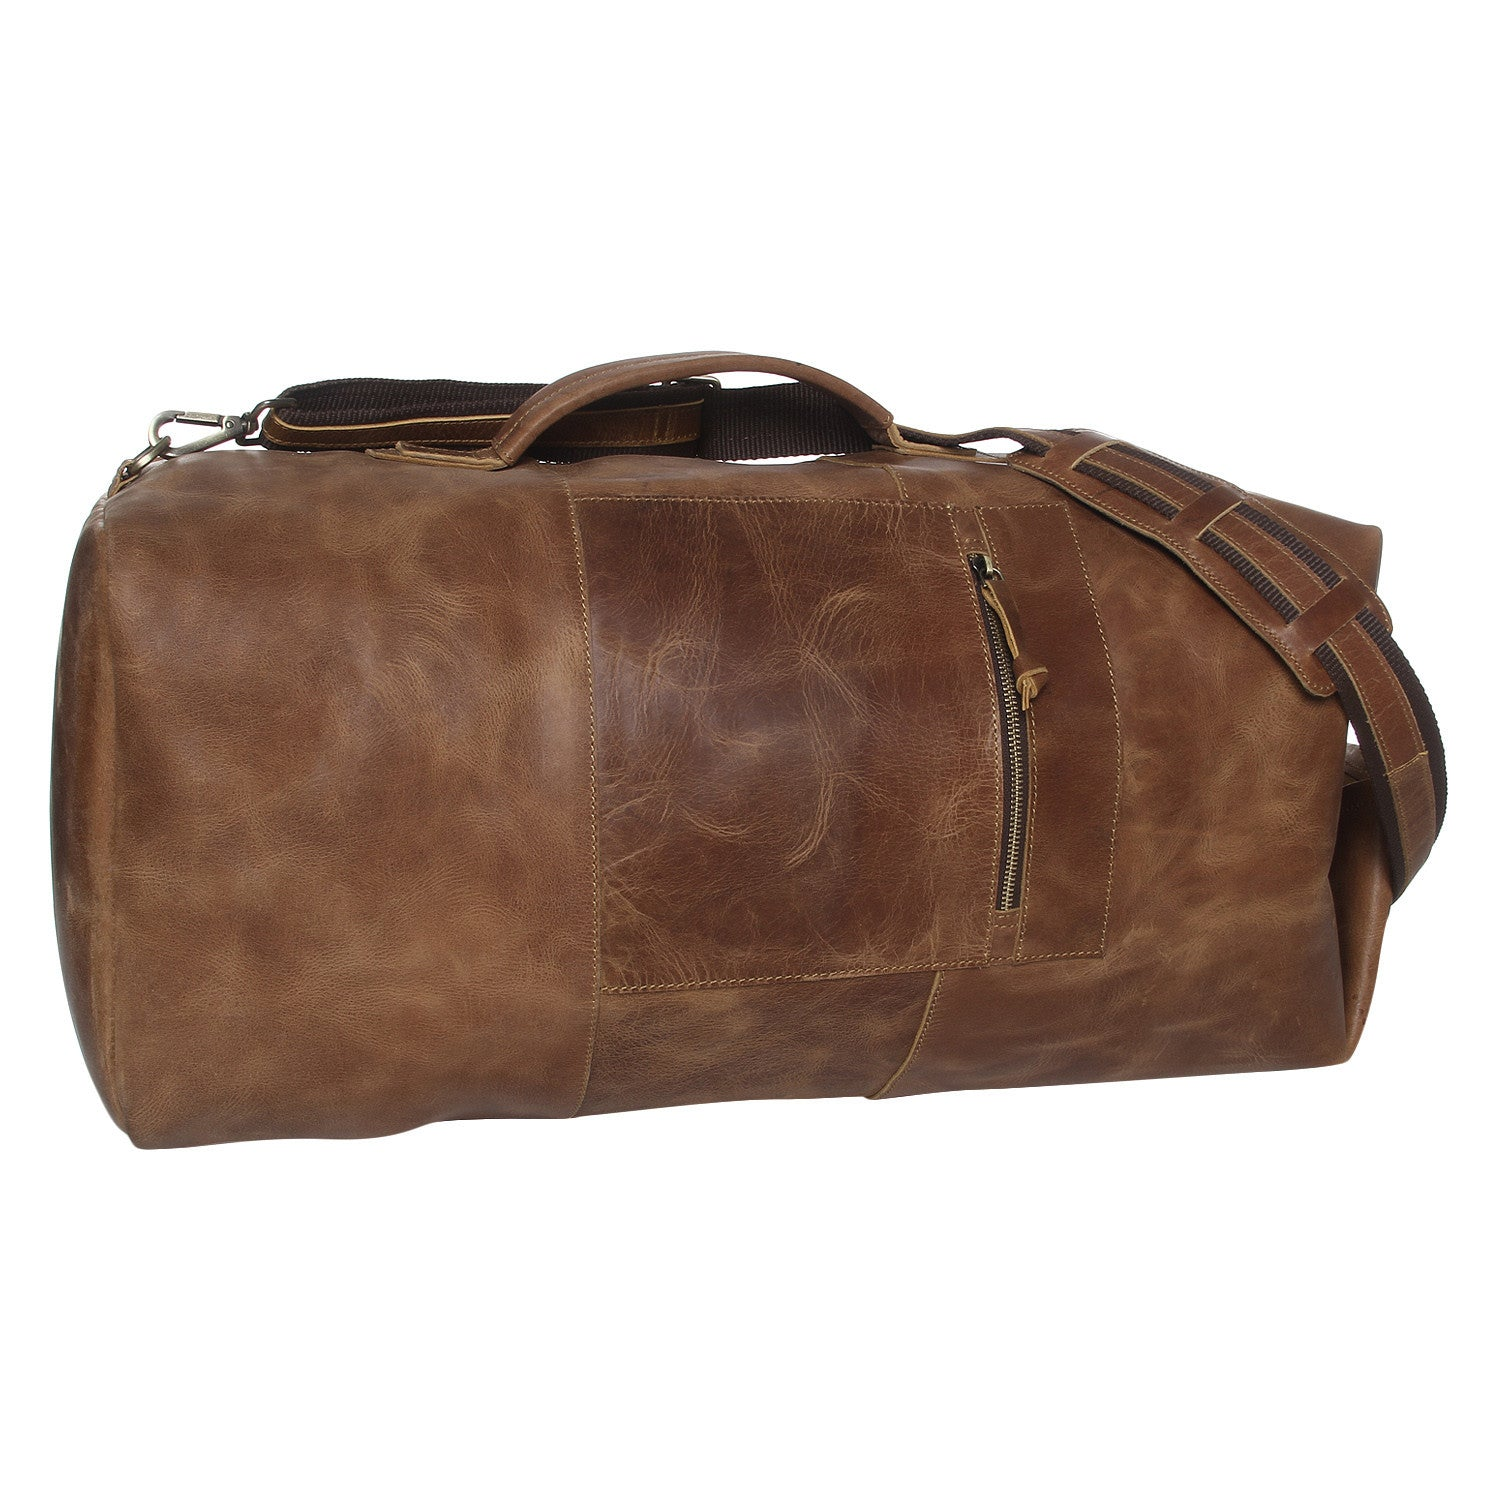 2df77fca8d0f ... Leather Duffel for Army Men  Bags for military Men  Gifts for military  men ...